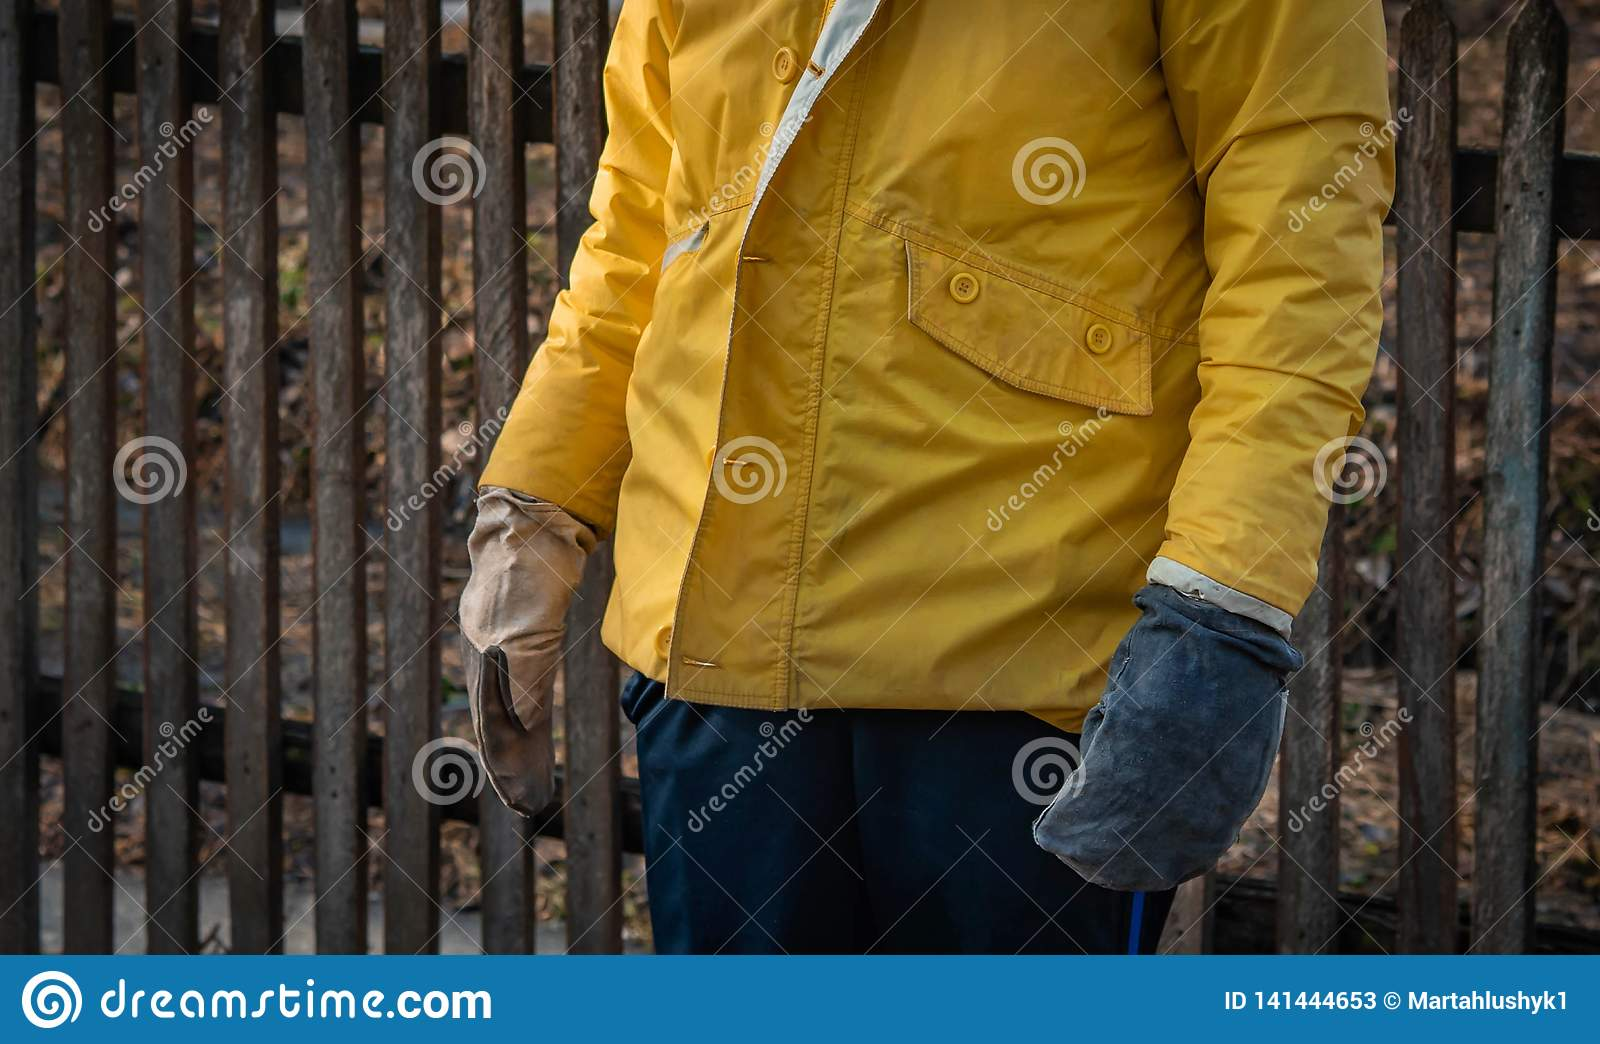 The worker is in working gloves and a working jacket